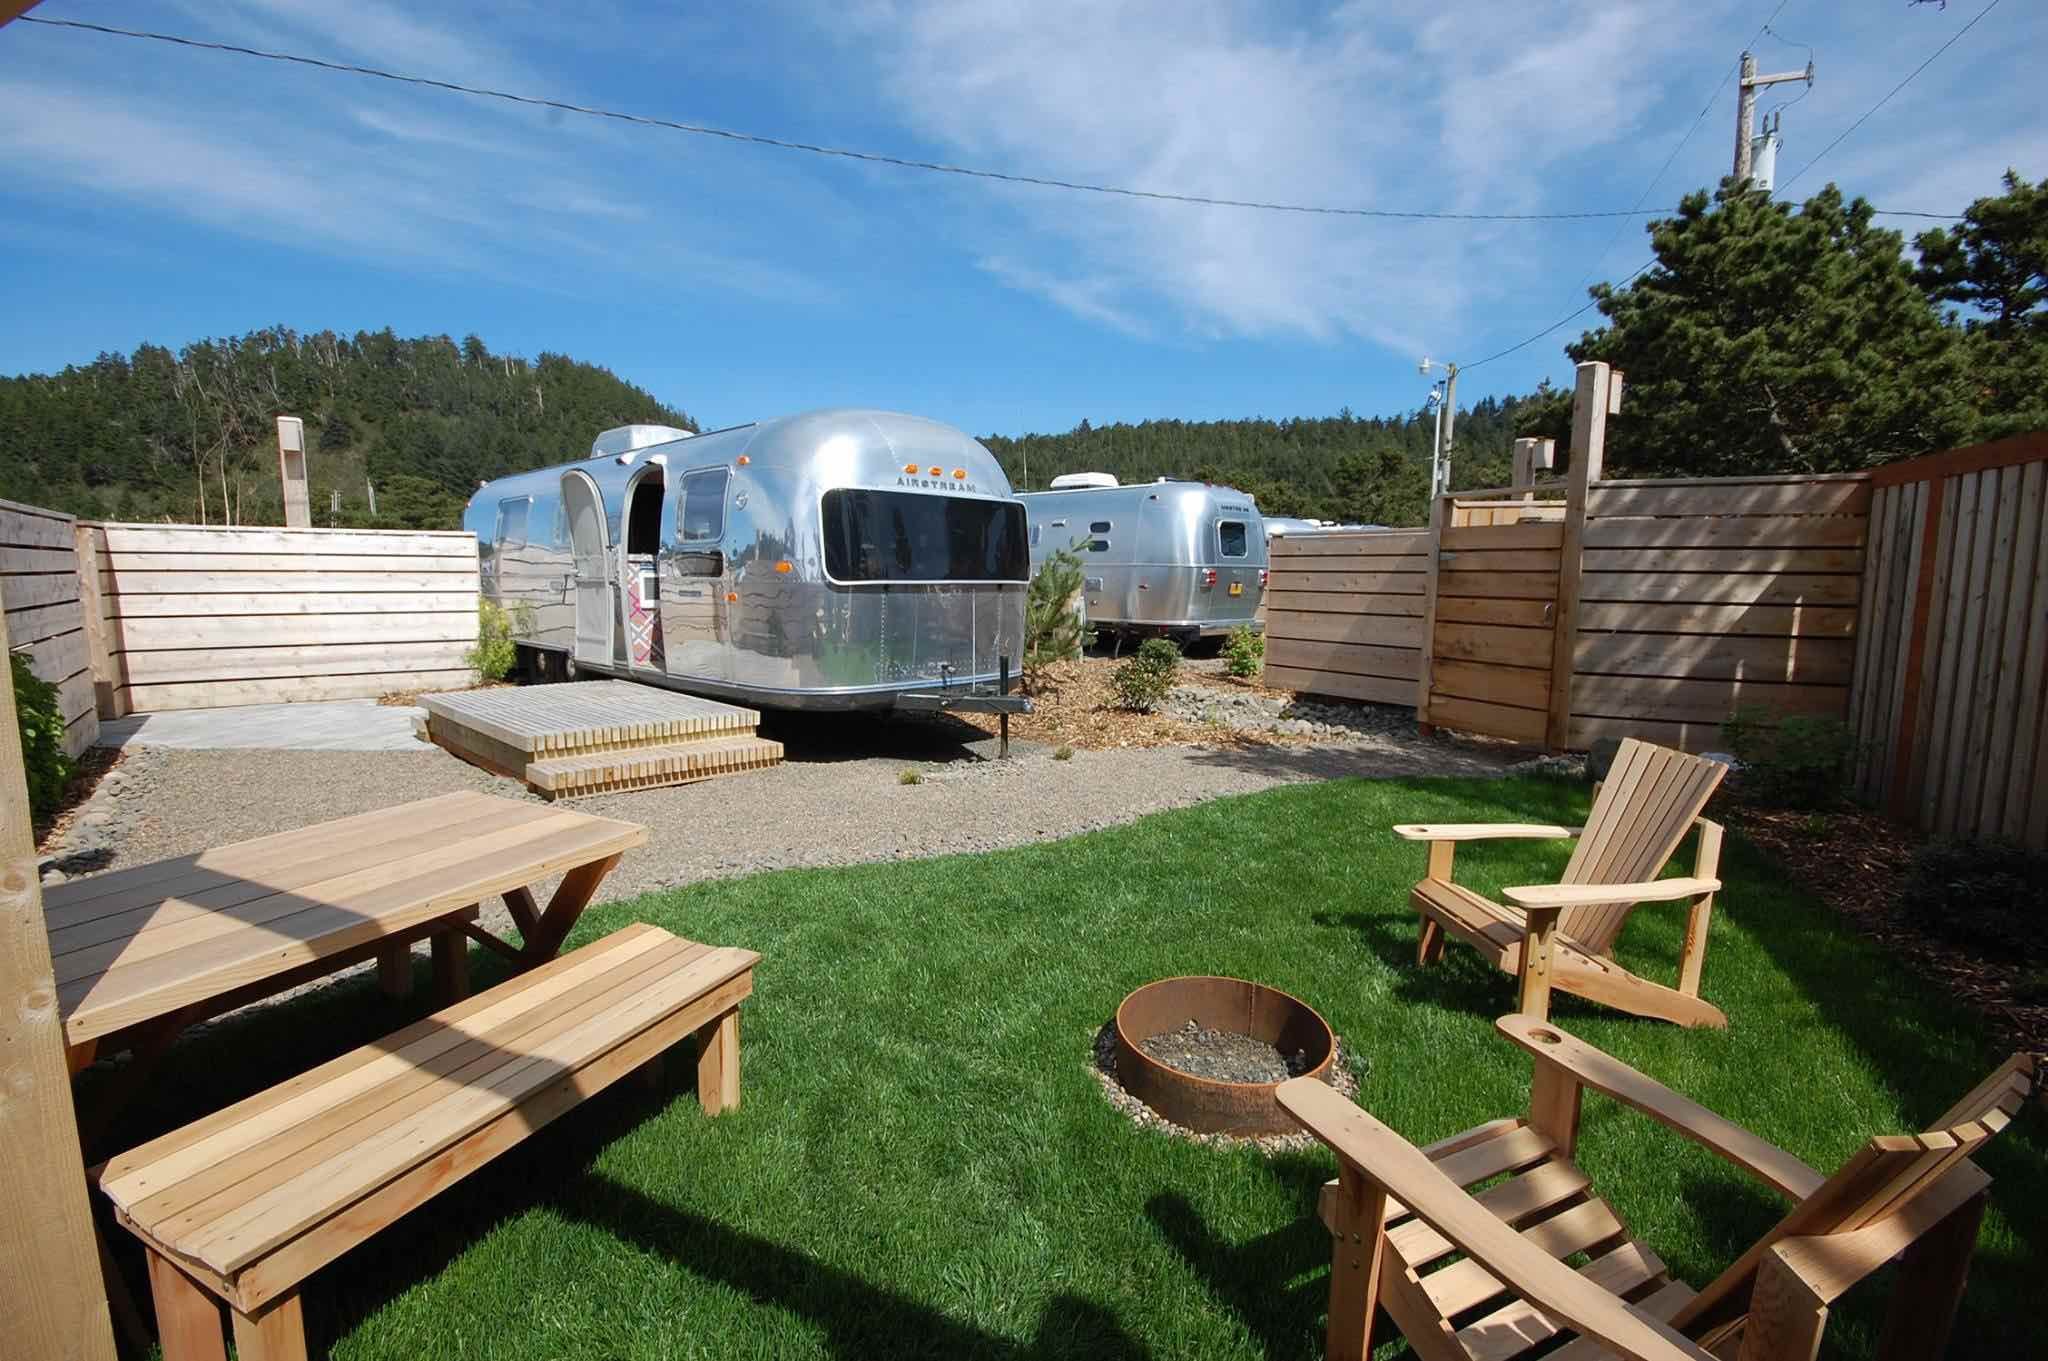 Outdoor area with trailers, picnic table, lounge chairs